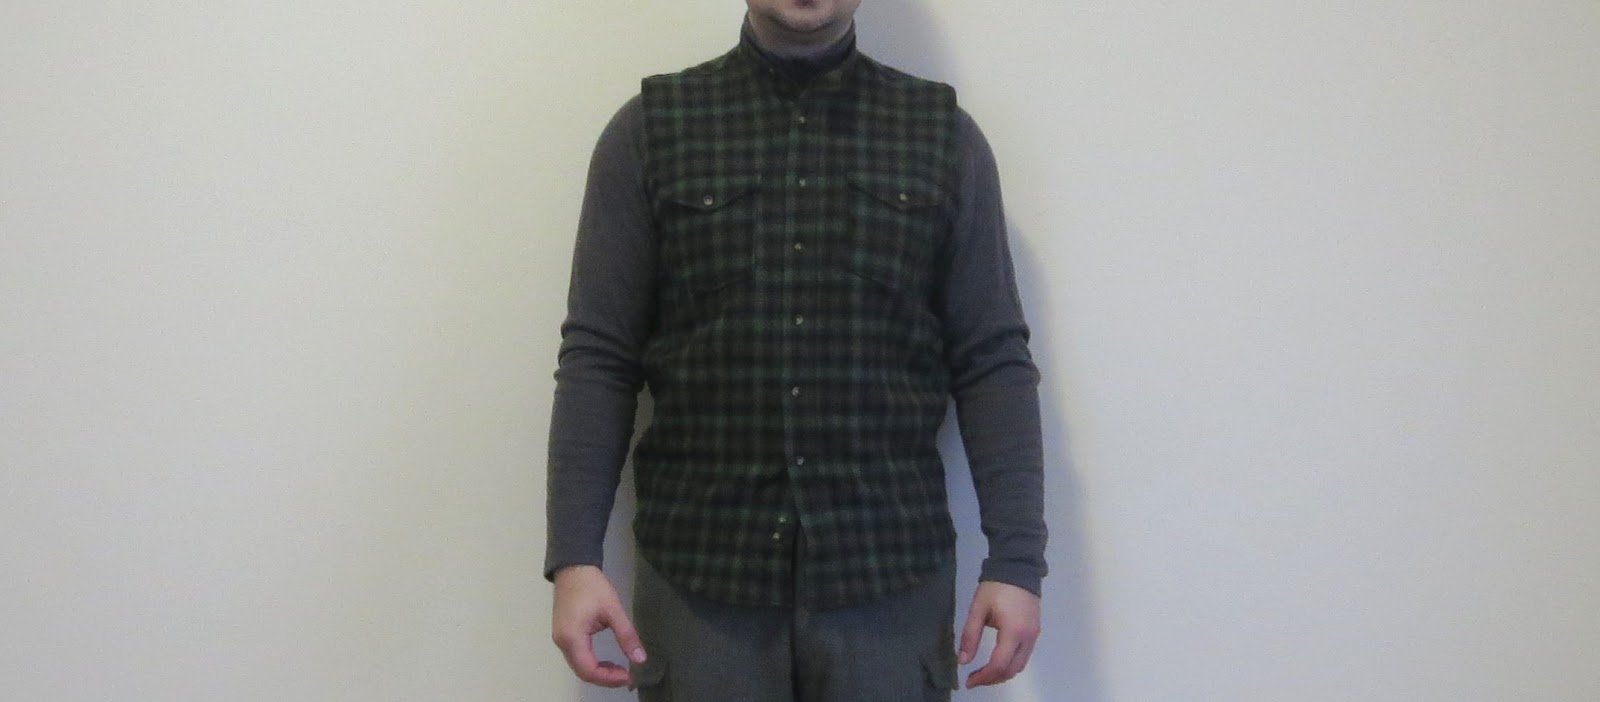 9116ccfb2402 The main one is a crew neck Woolrich 100% wool sweater. I have come to  prefer sweaters to other forms of insulation like jackets or blanket ...